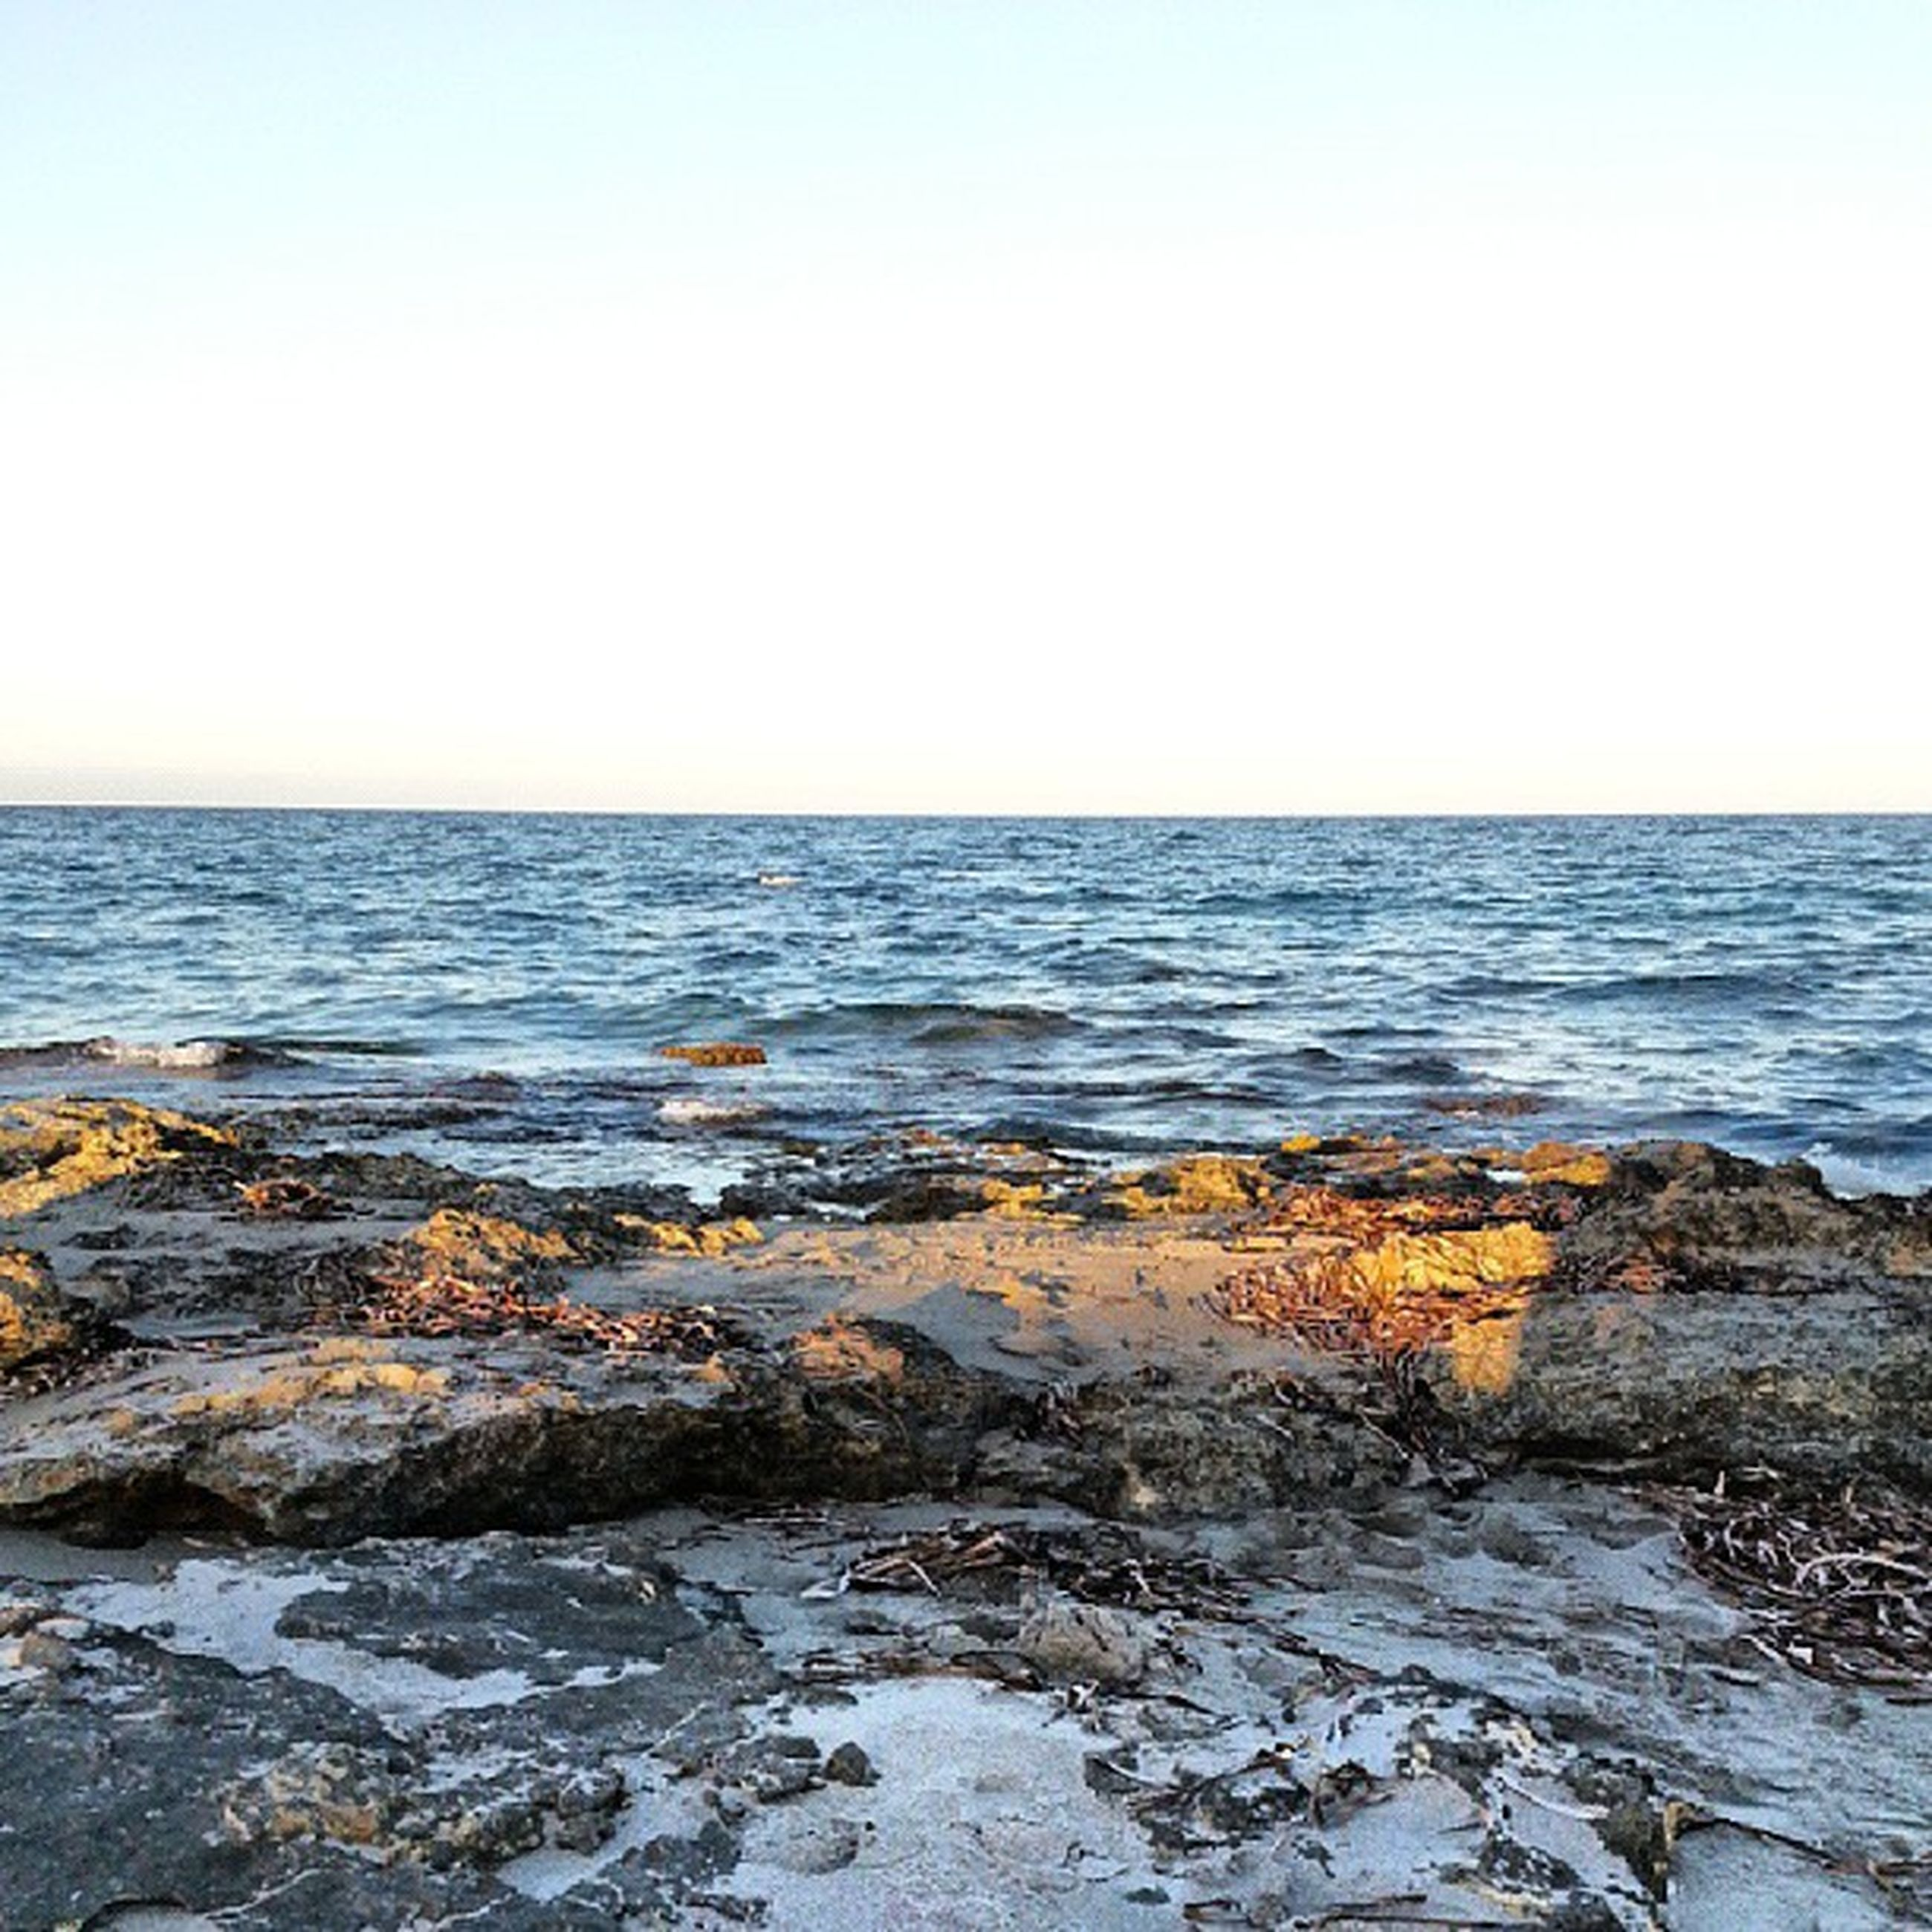 sea, water, horizon over water, clear sky, scenics, beauty in nature, tranquil scene, copy space, tranquility, rock - object, beach, nature, shore, wave, idyllic, remote, blue, rock formation, outdoors, non-urban scene